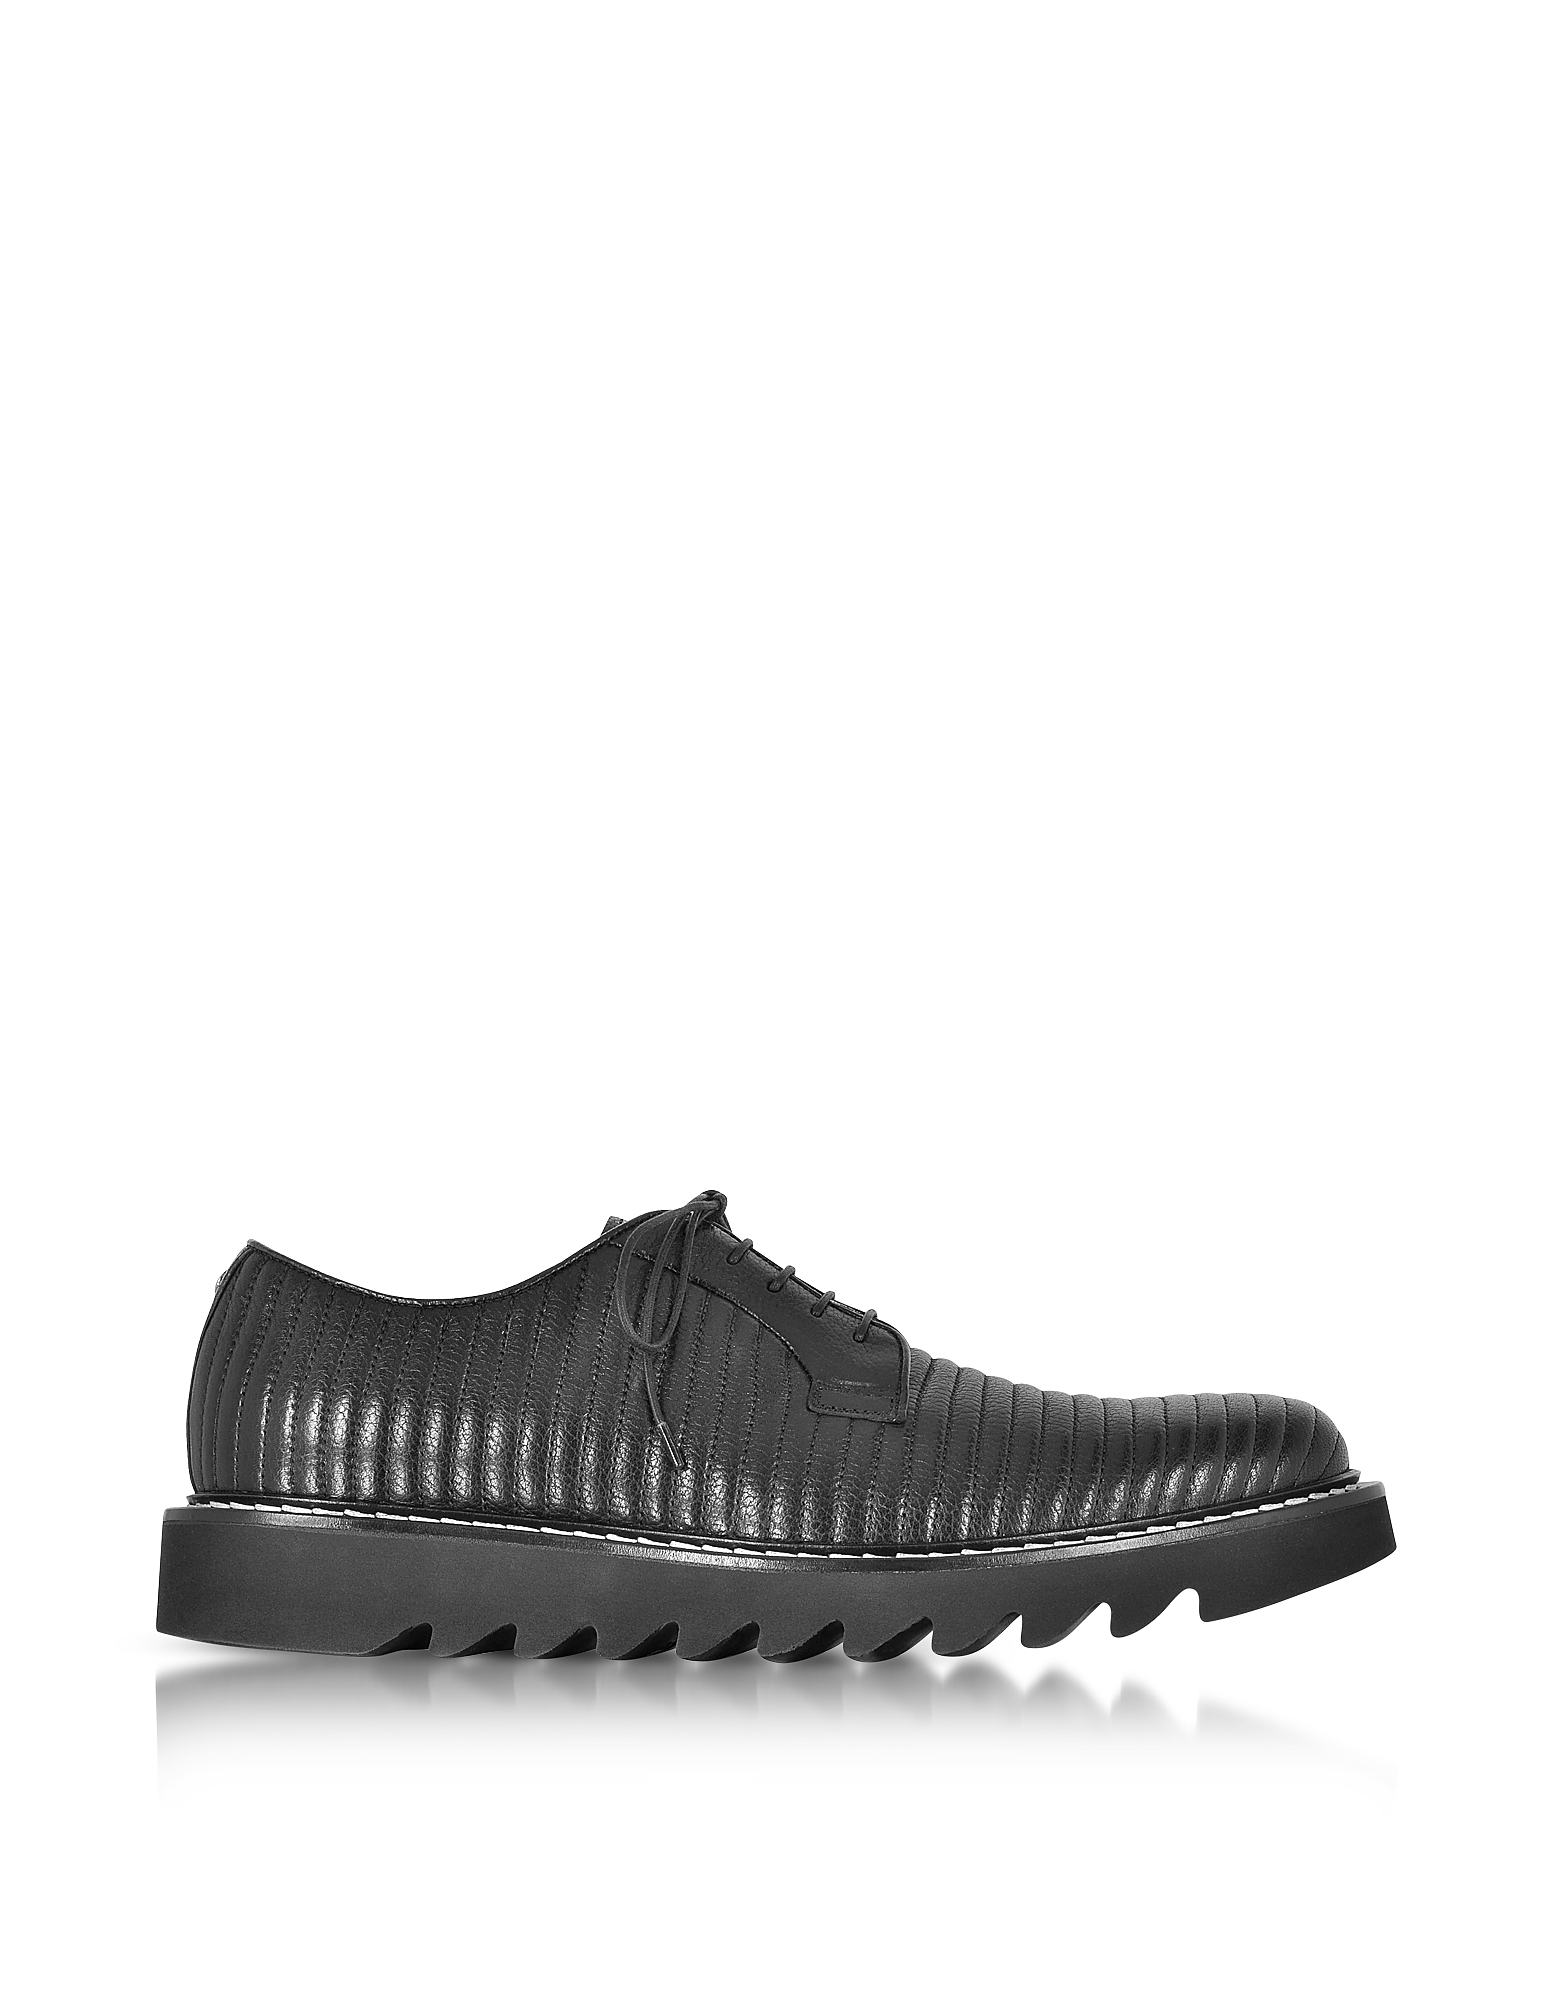 Cesare Paciotti Black Quilted Leather Lace up Shoes